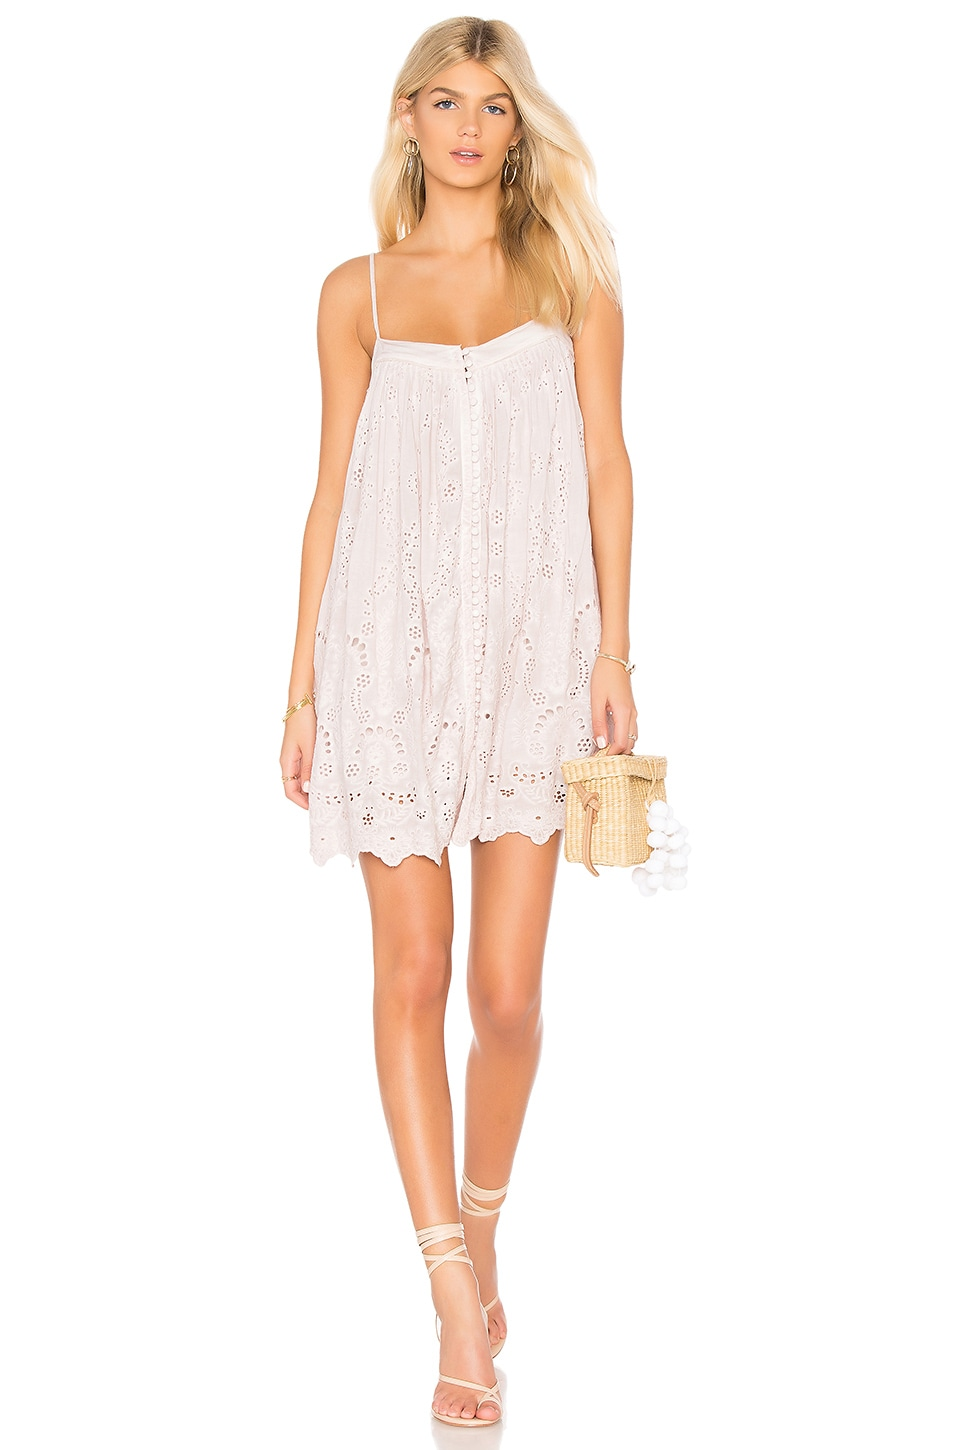 YOUNG FABULOUS & BROKE Bevy Dress, White in Blush